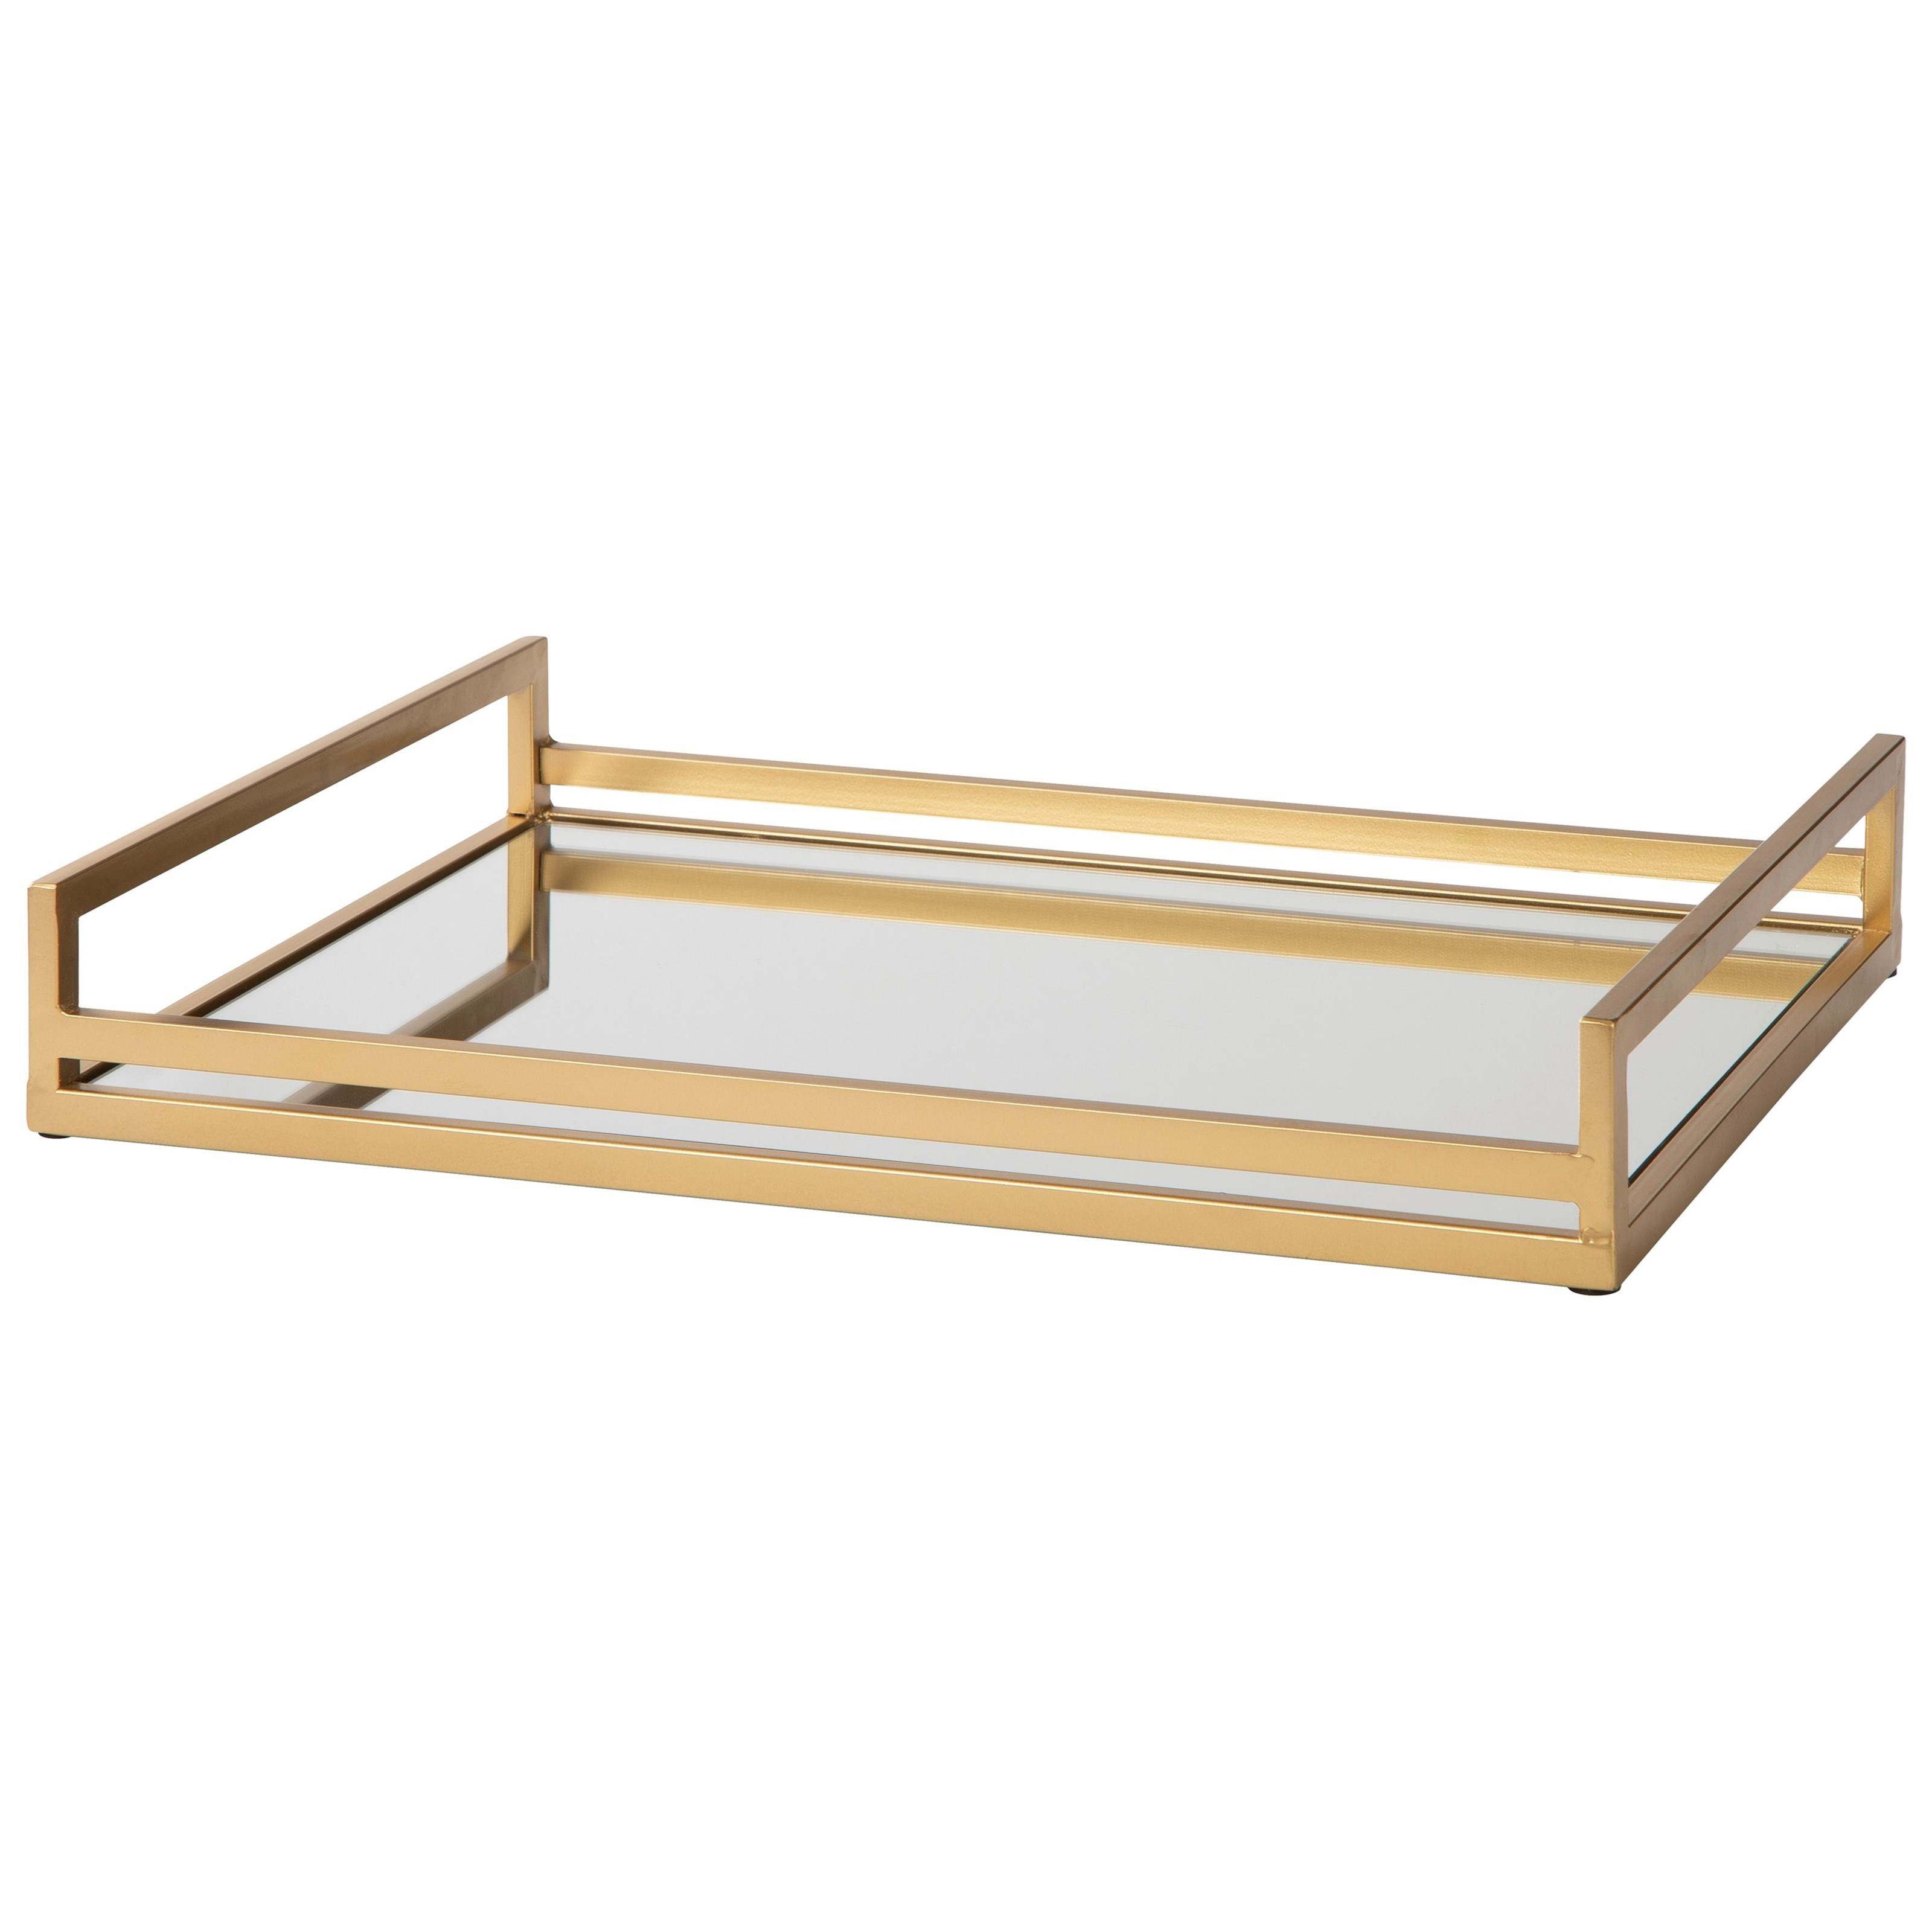 Accents Derex Gold Finish Tray by Signature Design by Ashley at Furniture Fair - North Carolina